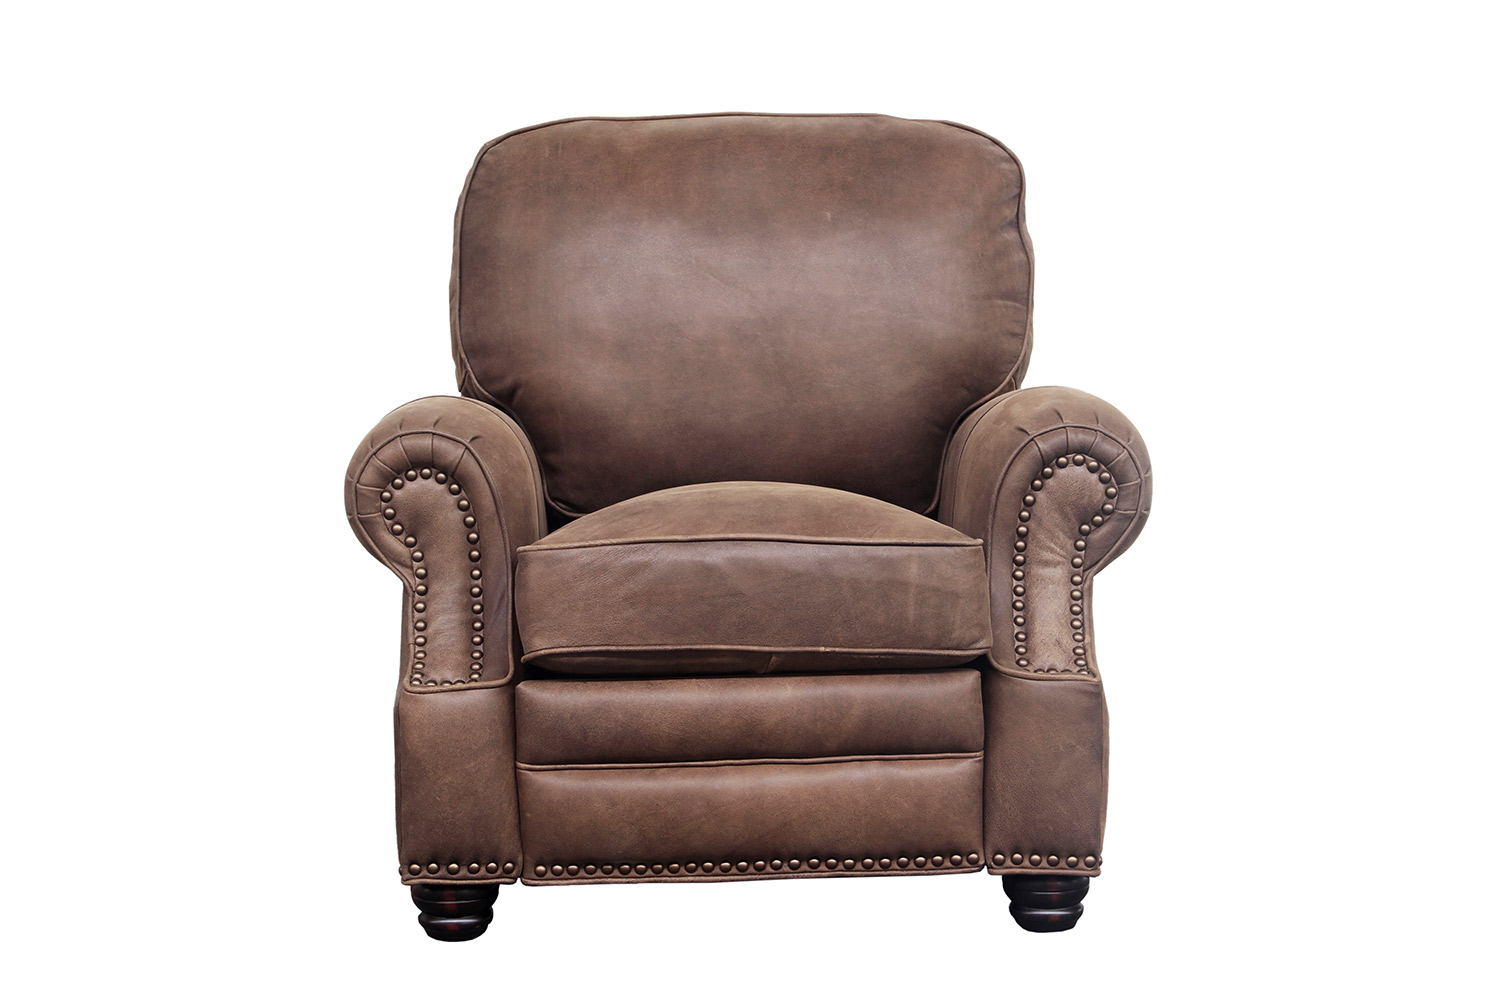 Barcalounger Longhorn Recliner Chair - Sanded Dark Bomber/Top Grain Leather